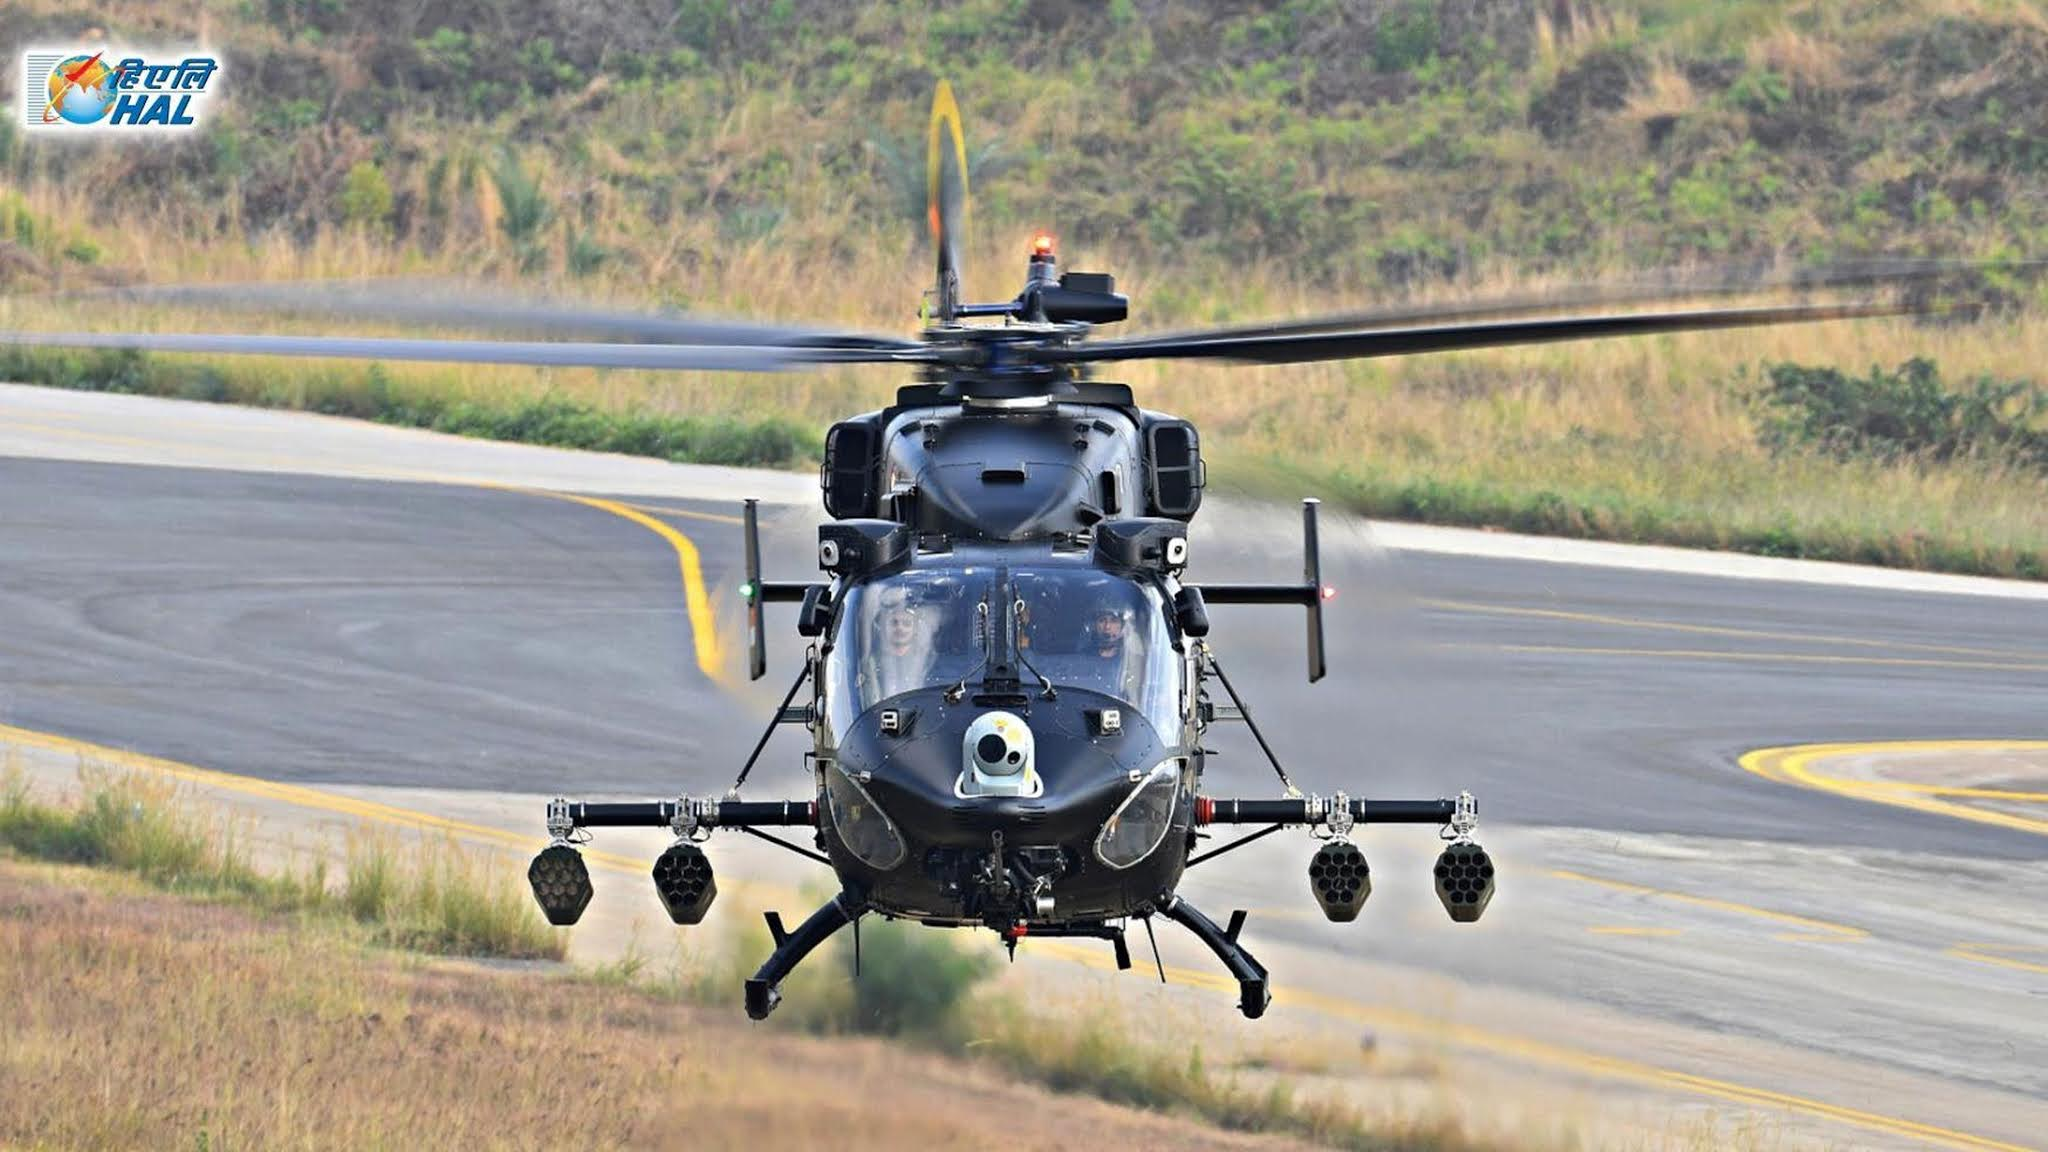 Advanced Light Helicopter - ALH - Weapon System Integration - WSI - HAL Rudra - 01